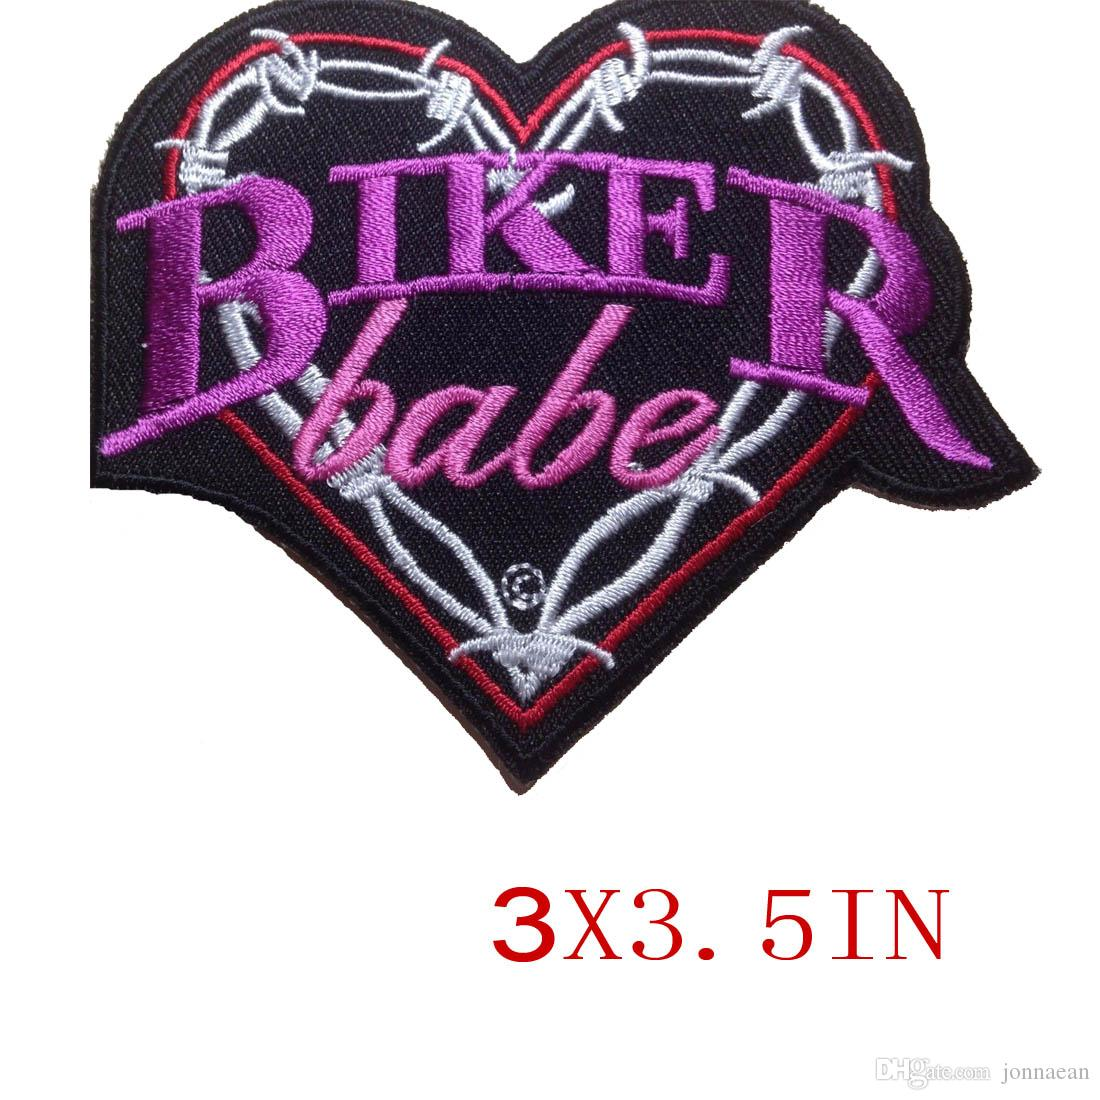 CUSTOM LOW PRICE BIKER BABE EMBROIDERED MOTORCYCLE BIKER MC ROCK IRONSEW LADIES VEST PATCH FREE SHIPPING